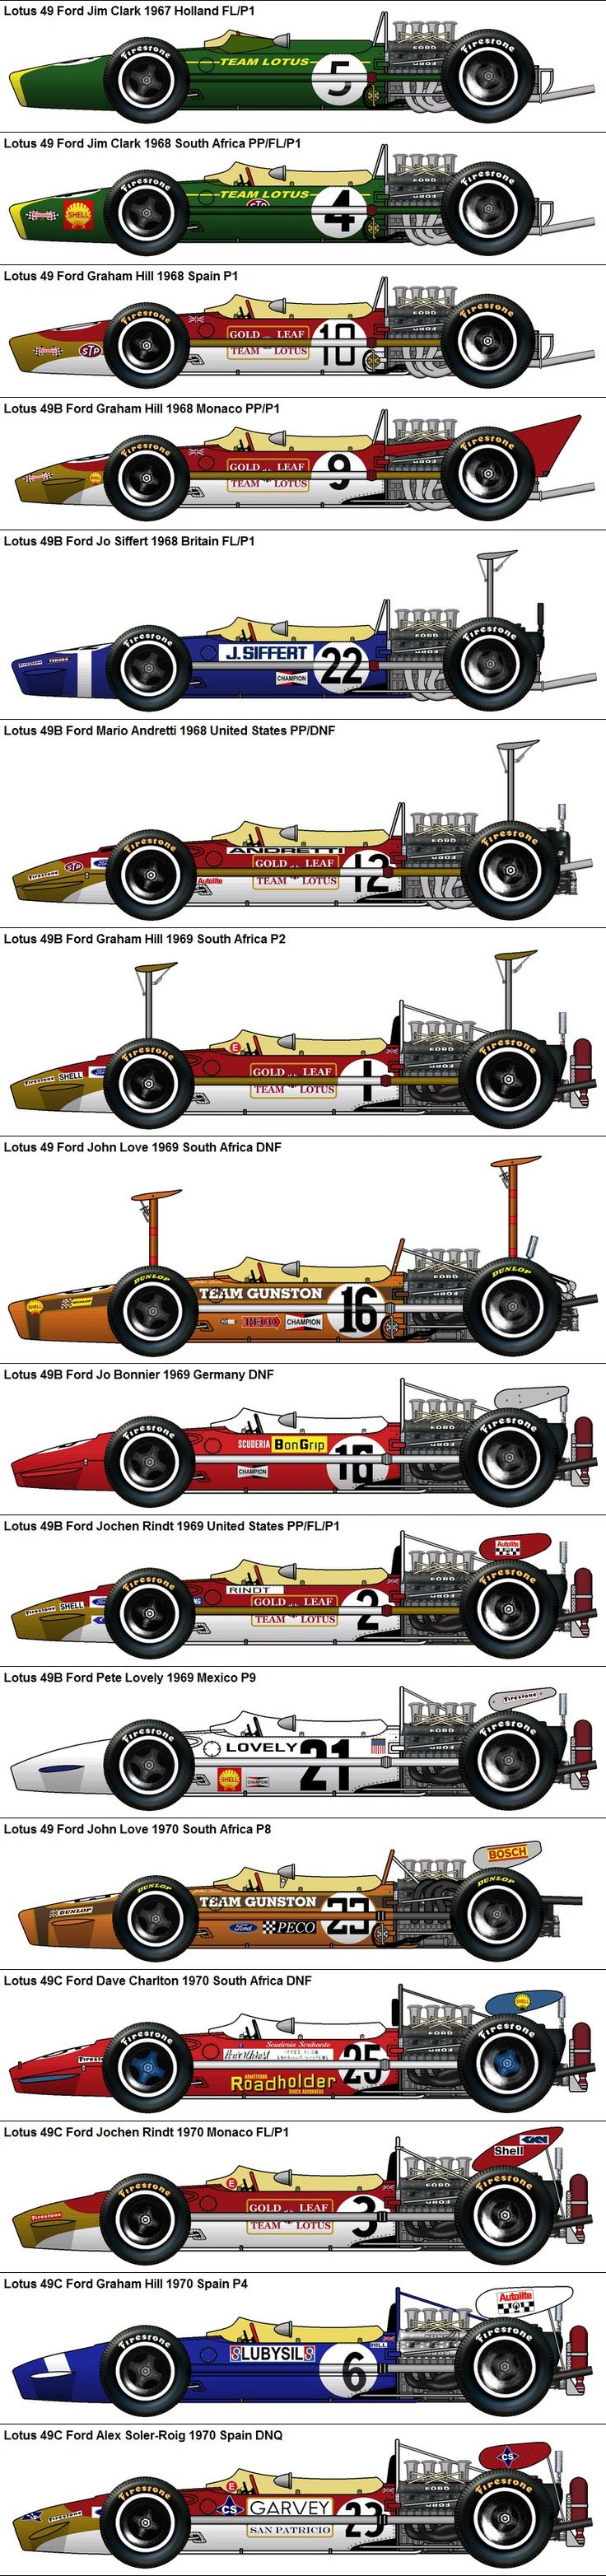 Formula One Grand Prix Lotus 49 Fords 1967-1970